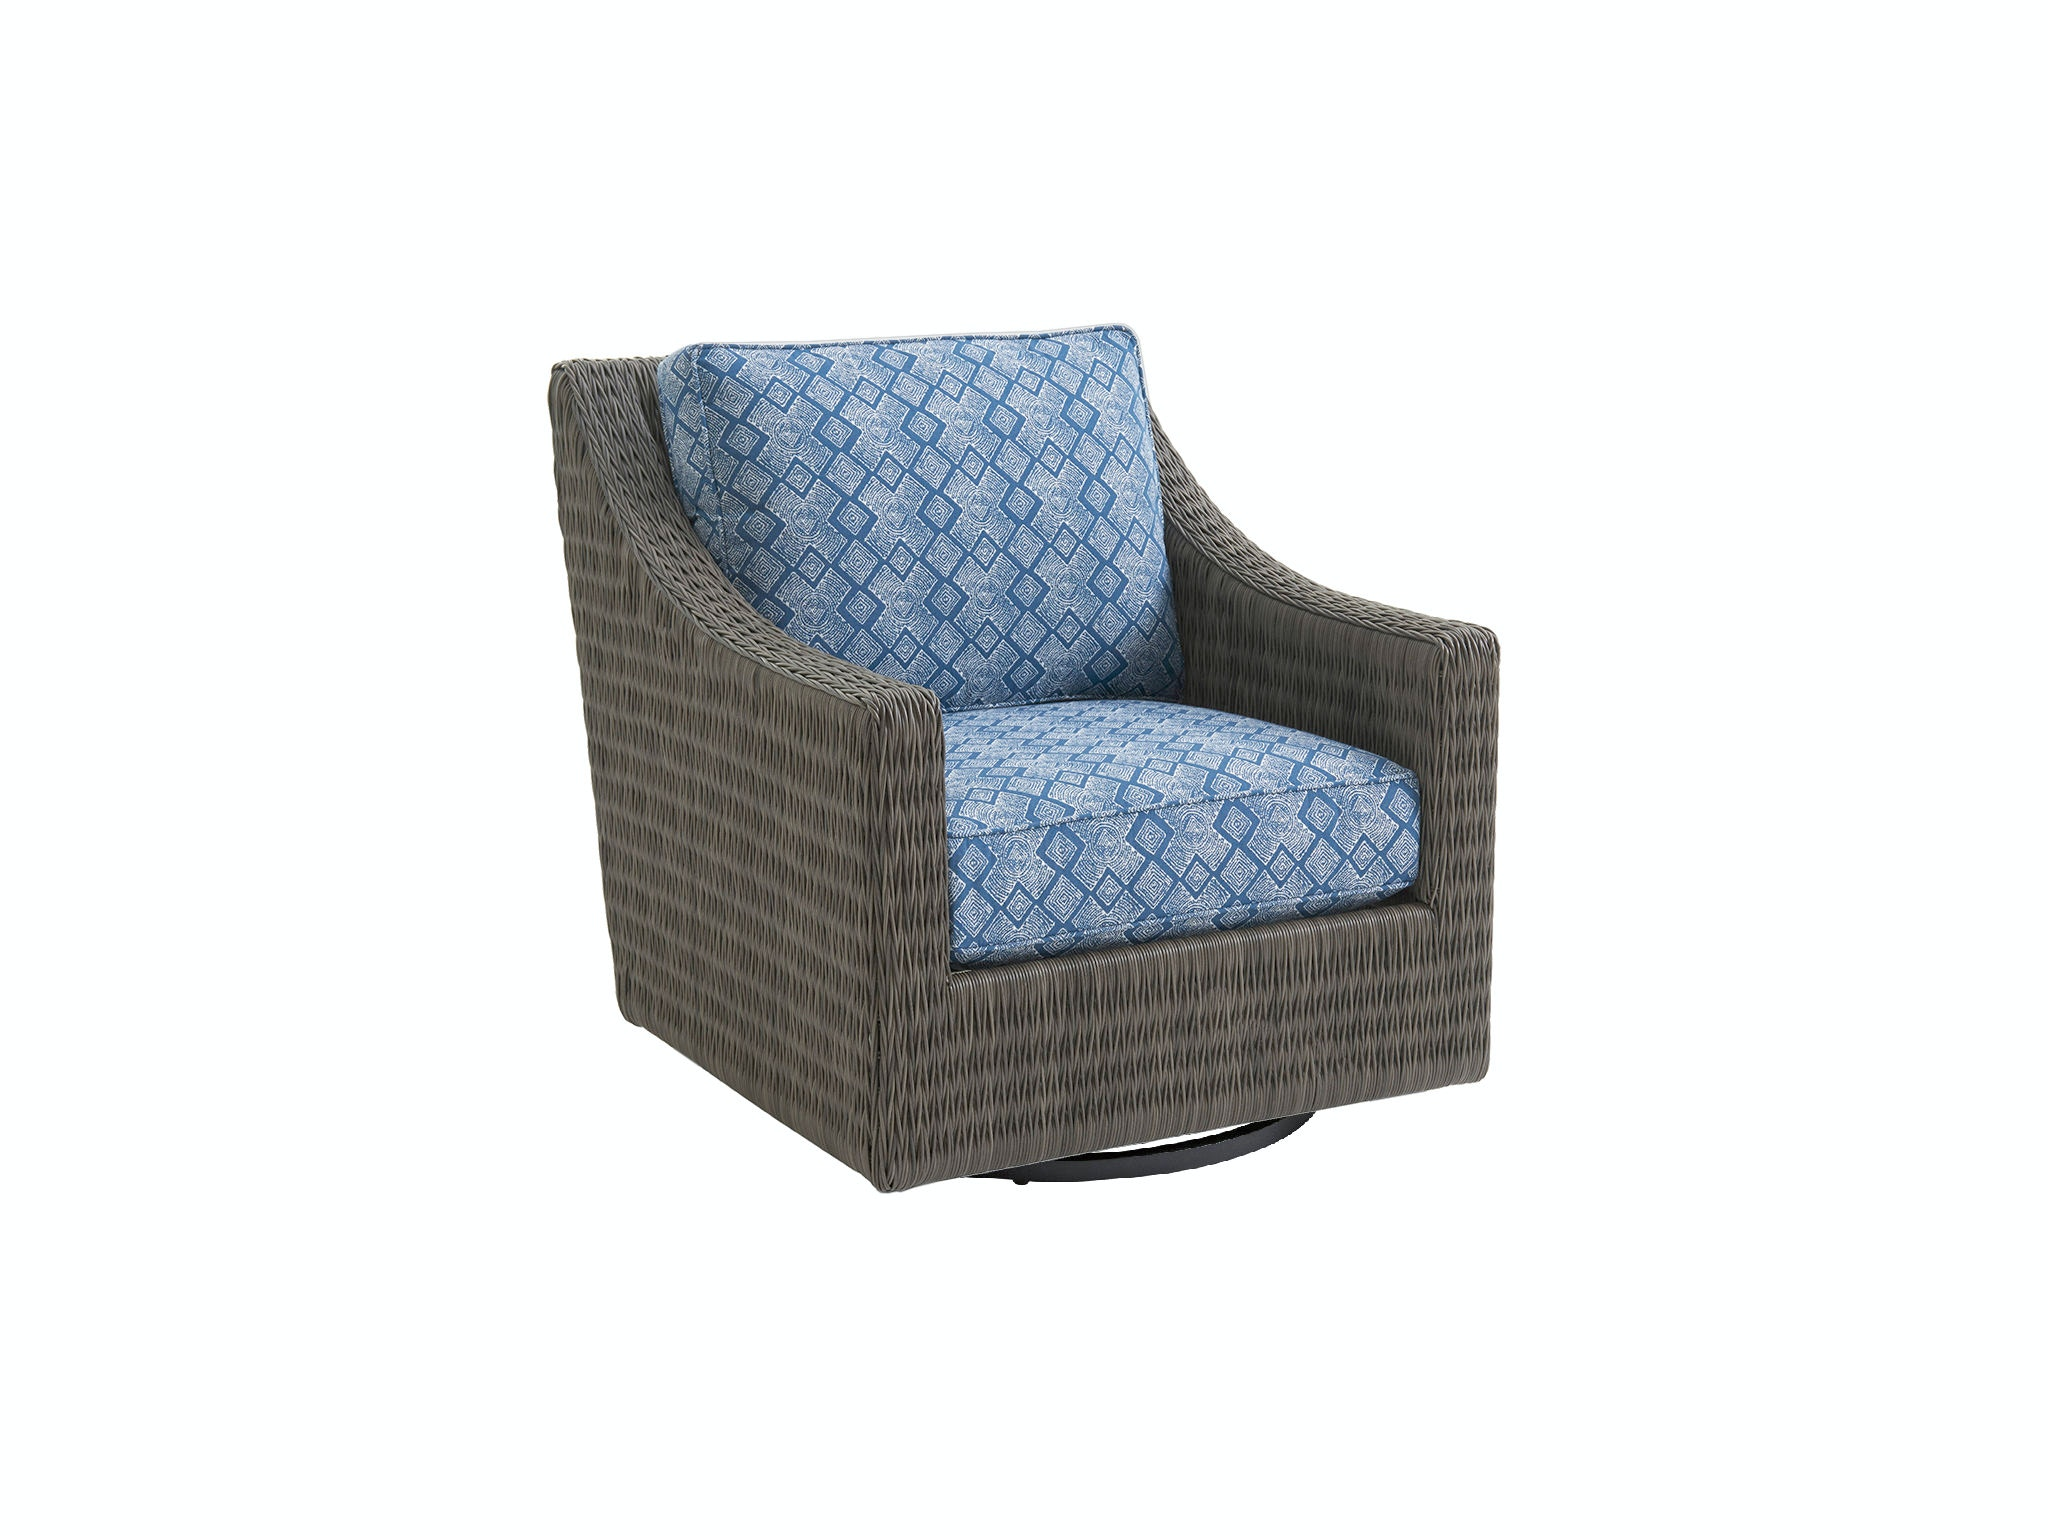 Tommy Bahama Outdoor Living Outdoor Patio Swivel Glider Lounge Chair